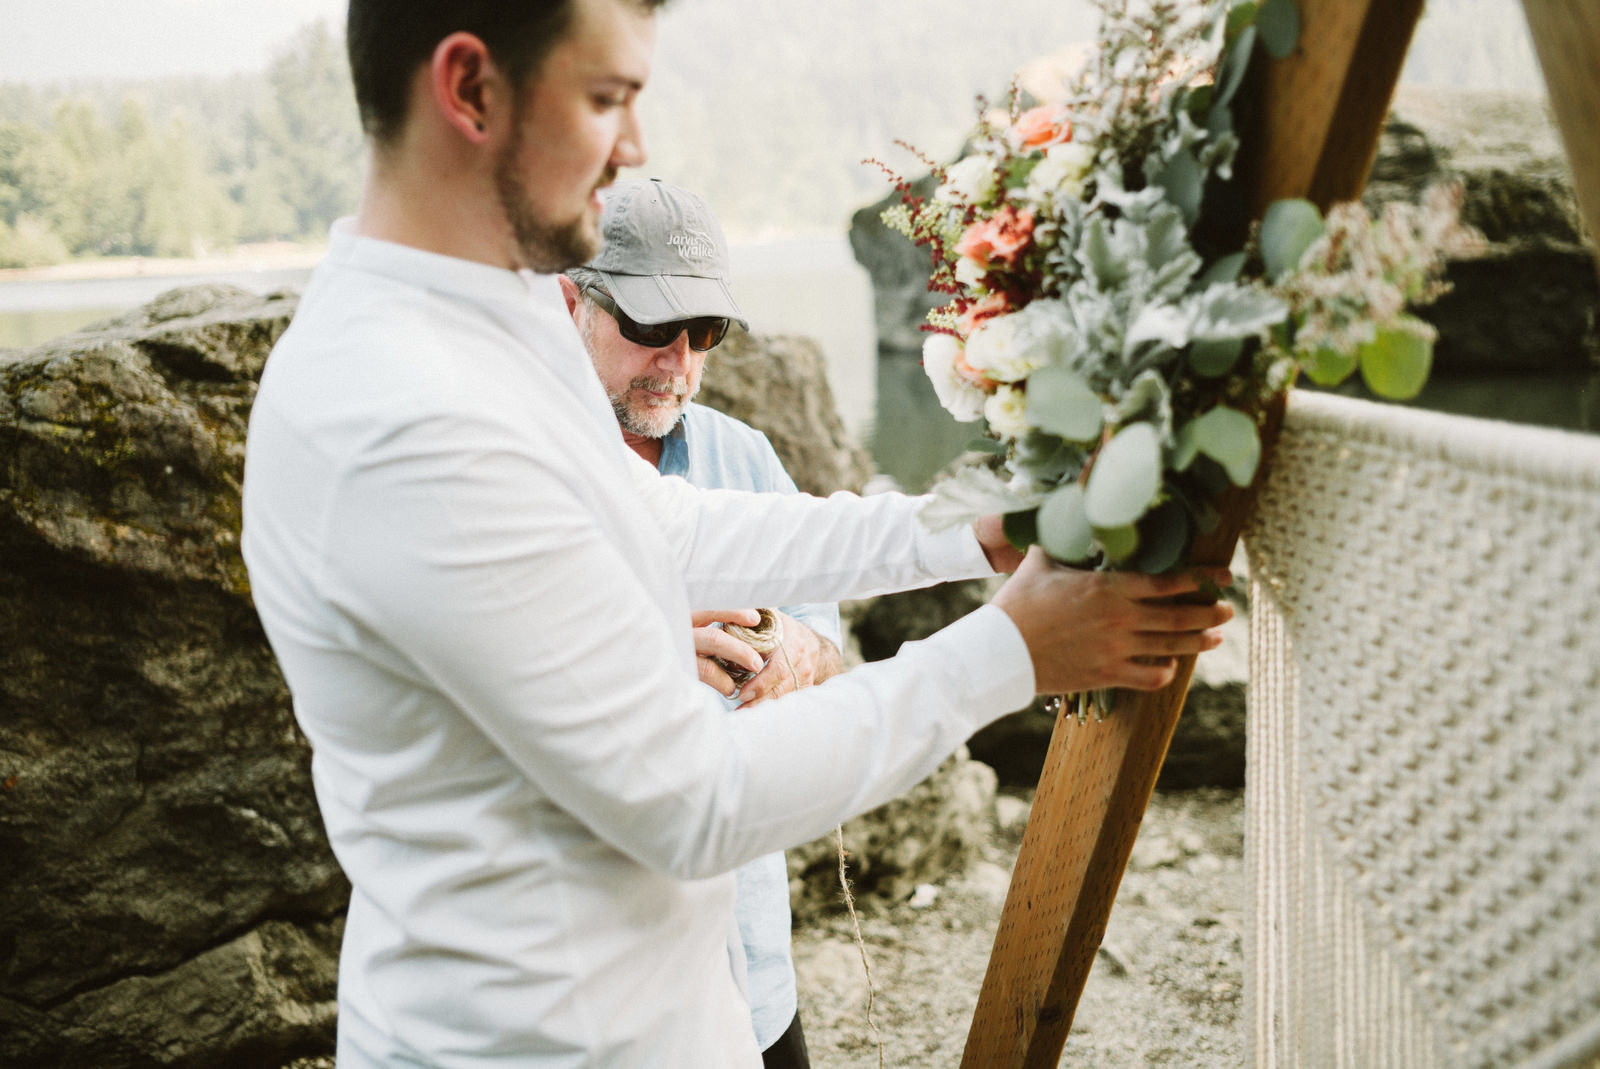 athena-and-camron-seattle-elopement-wedding-benj-haisch-rattlesnake-lake-christian-couple-goals36